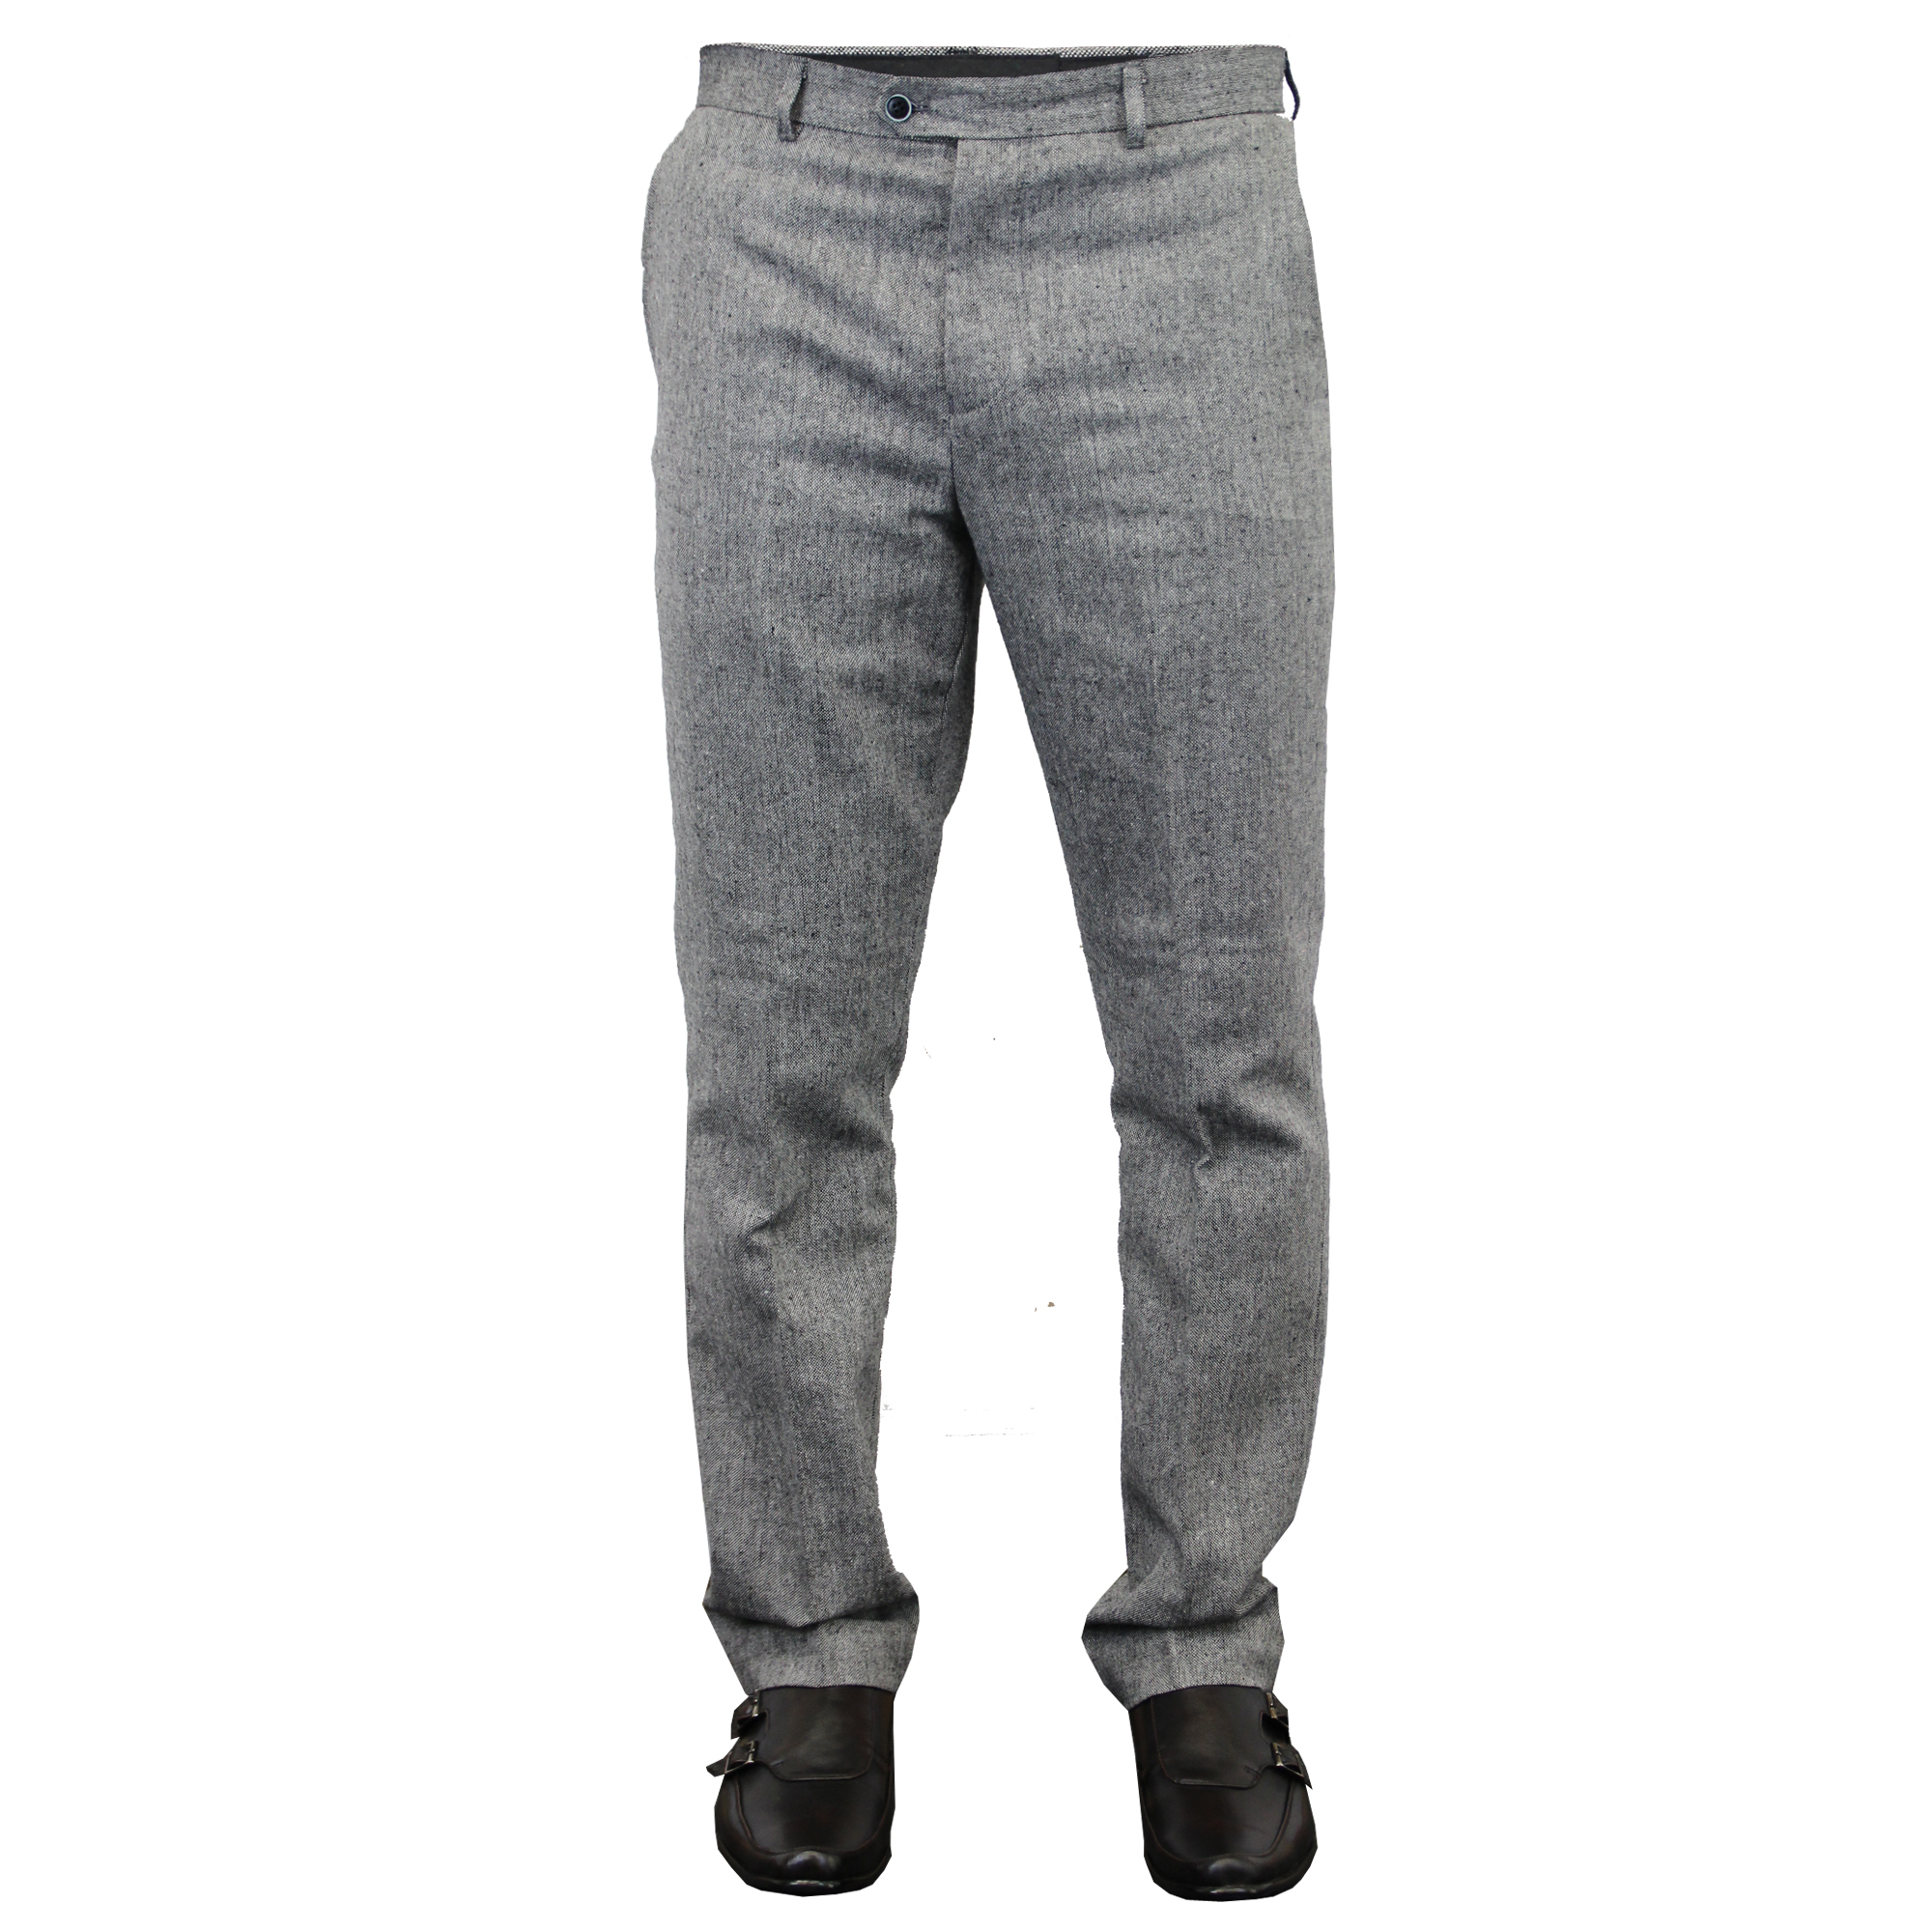 Find great deals on eBay for mens wool trousers. Shop with confidence.